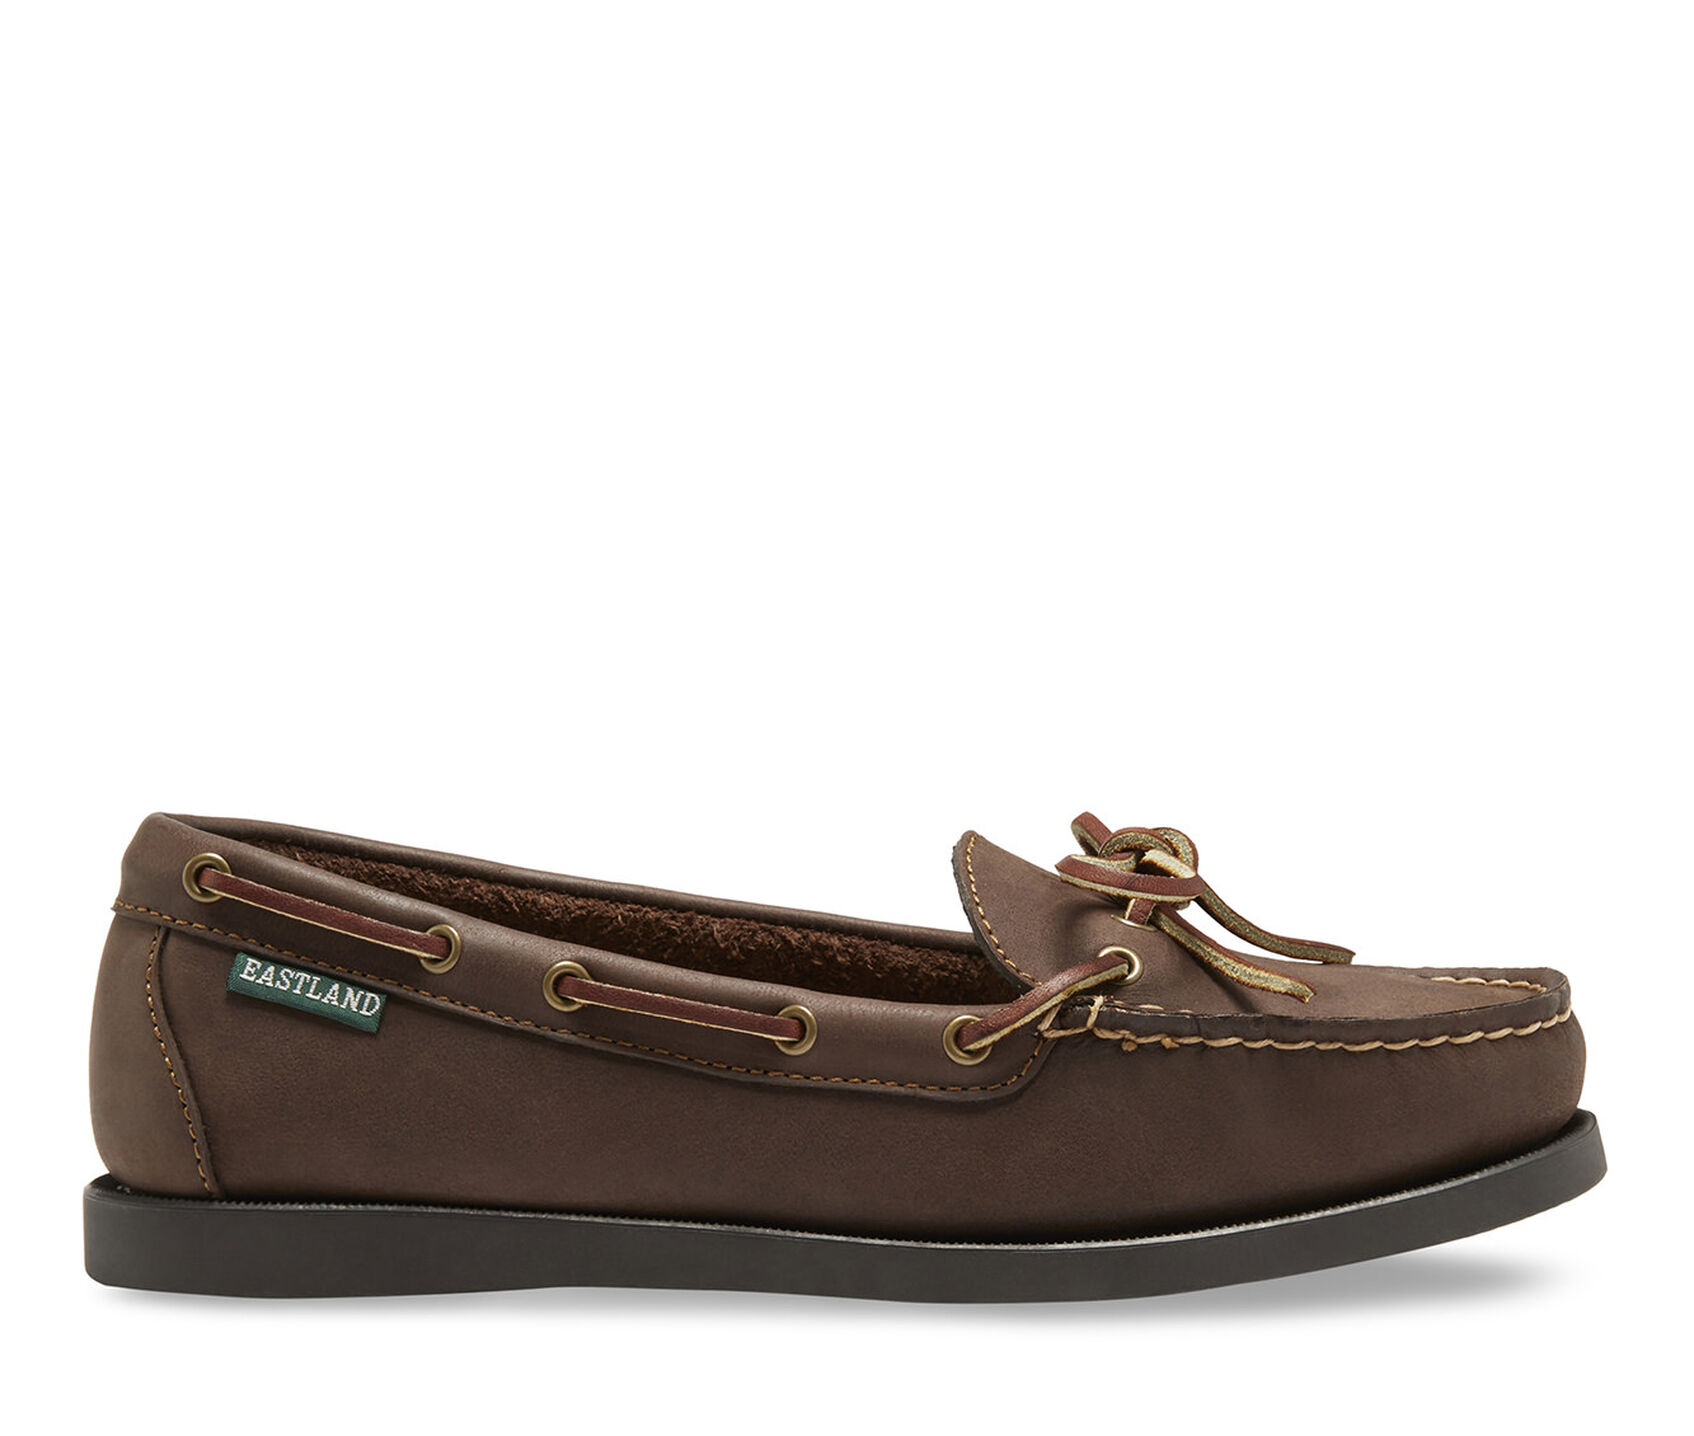 772624de6f7 ... Eastland Yarmouth Boat Shoes. Previous